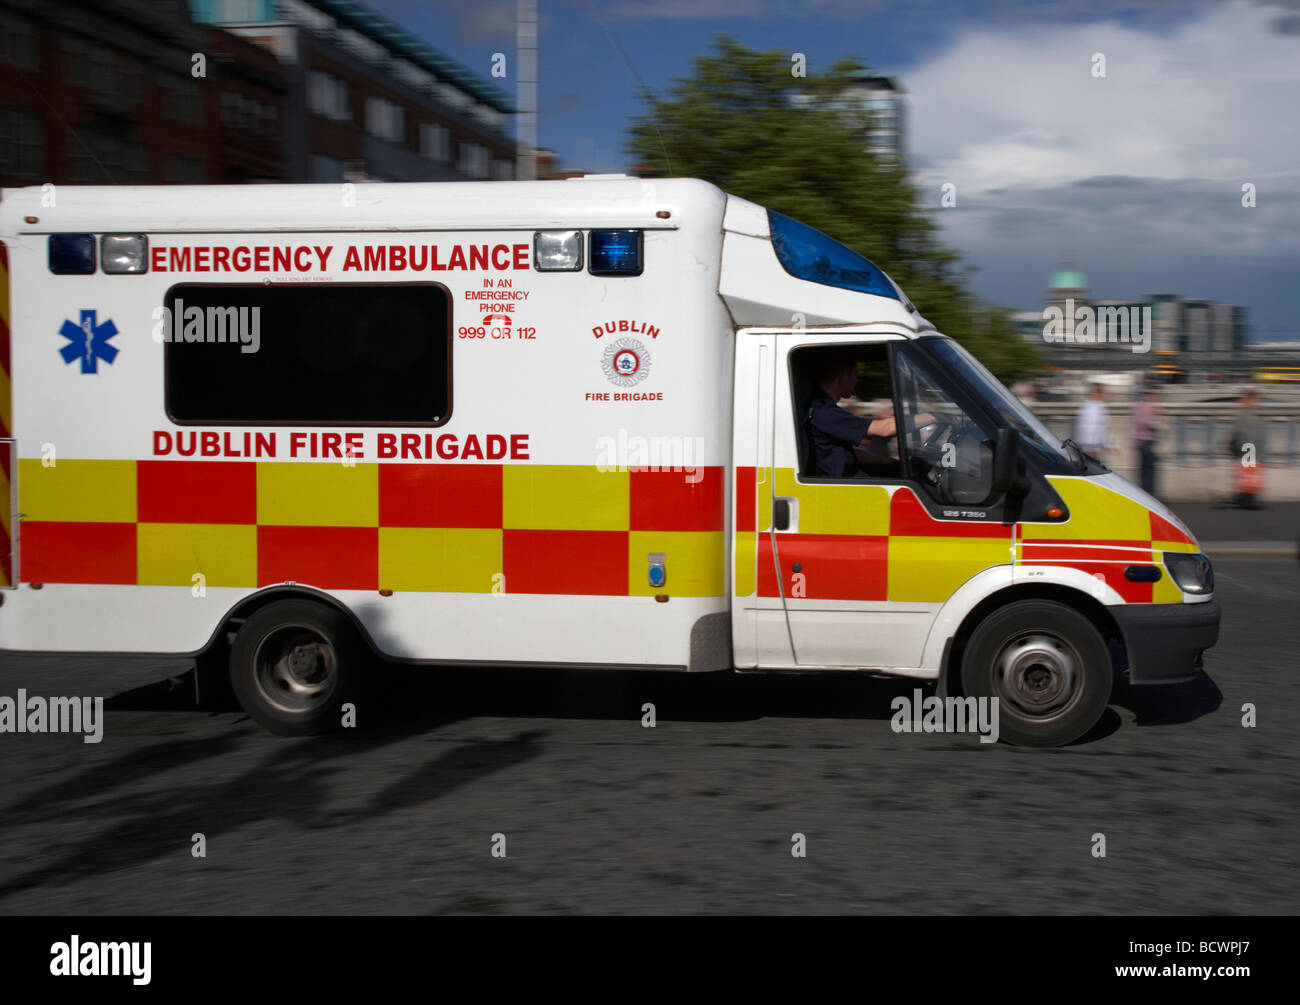 emergency ambulance from the dublin fire brigade rushing through dublin city centre republic of ireland - Stock Image